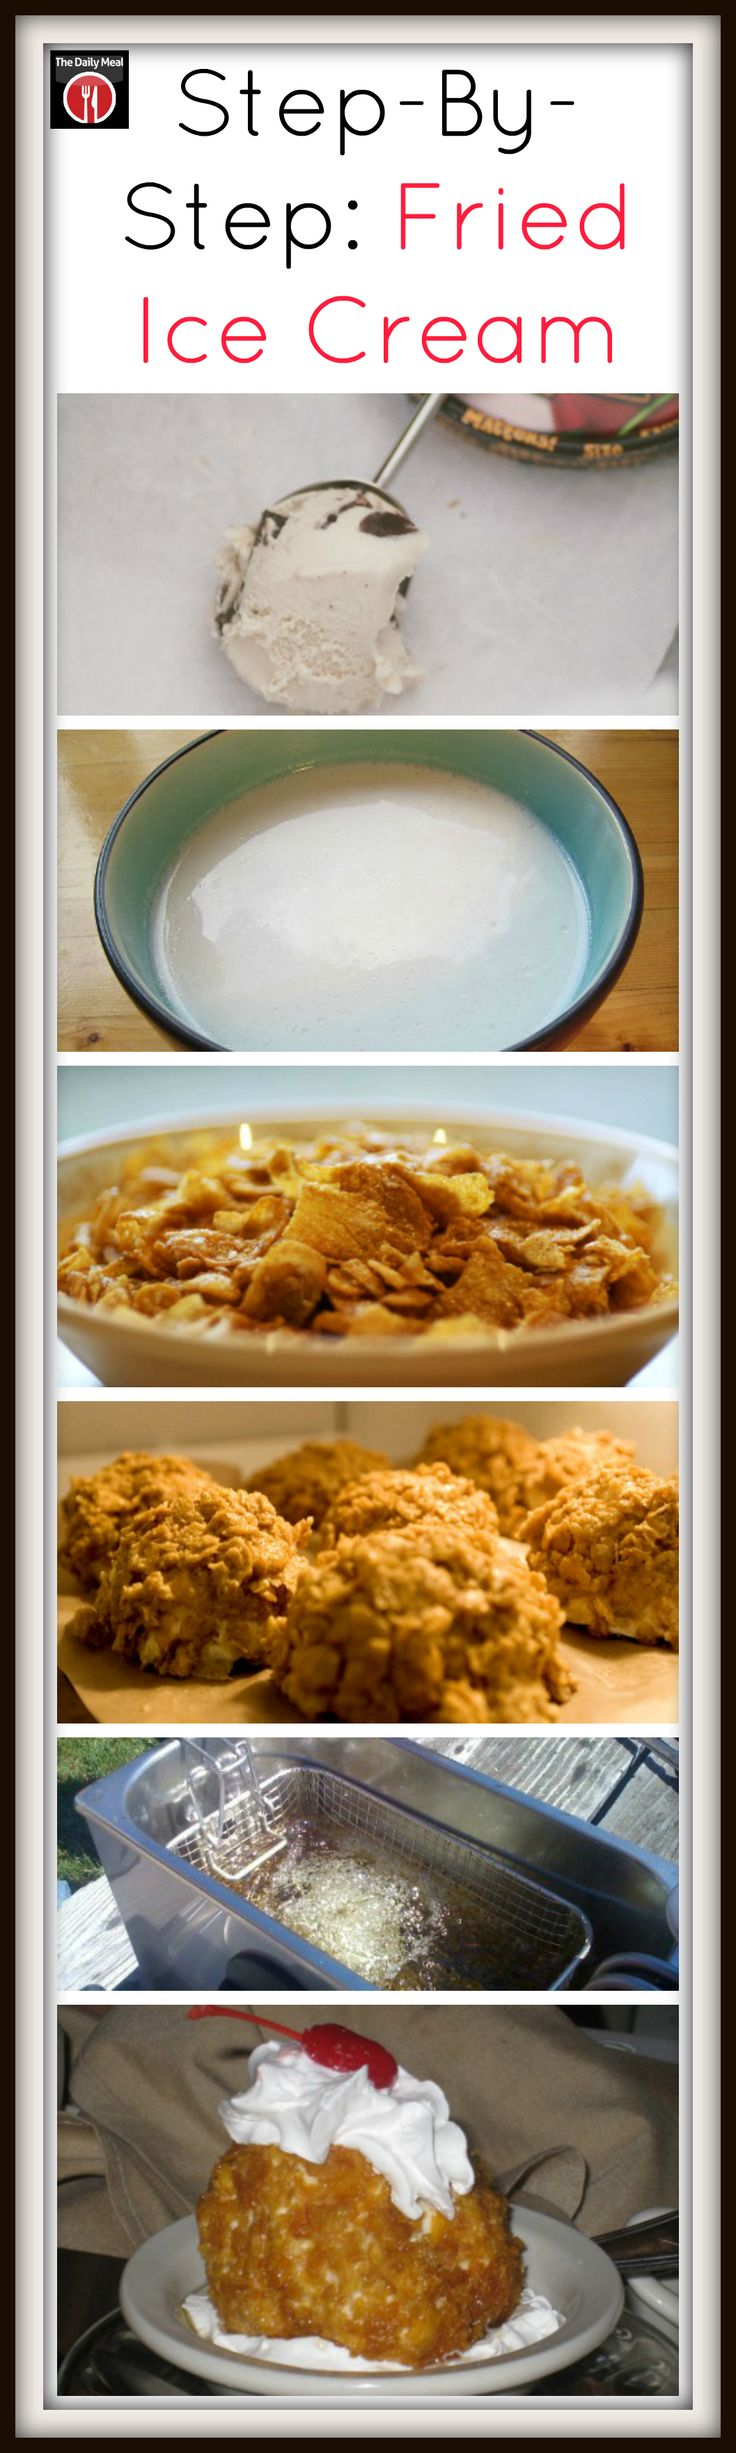 Serve your fried ice cream with your favorite sundae toppings. http://www.thedailymeal.com/step-step-fried-ice-cream